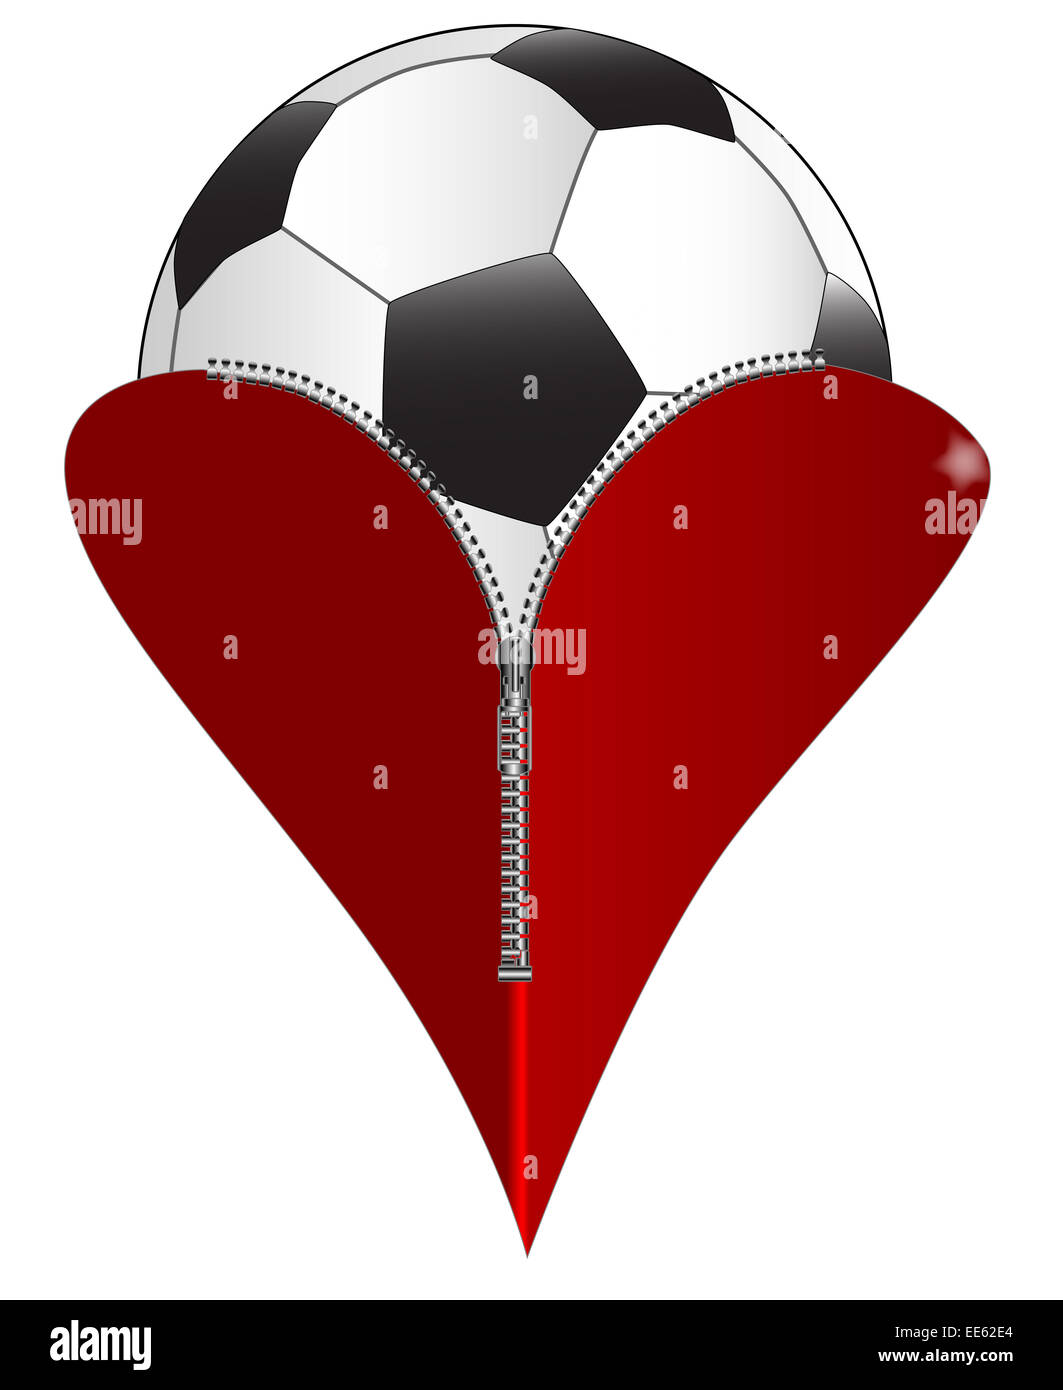 A red heart with a zipper showing a soccer ball rising from within a red heart with a zipper showing a soccer ball rising from within biocorpaavc Images